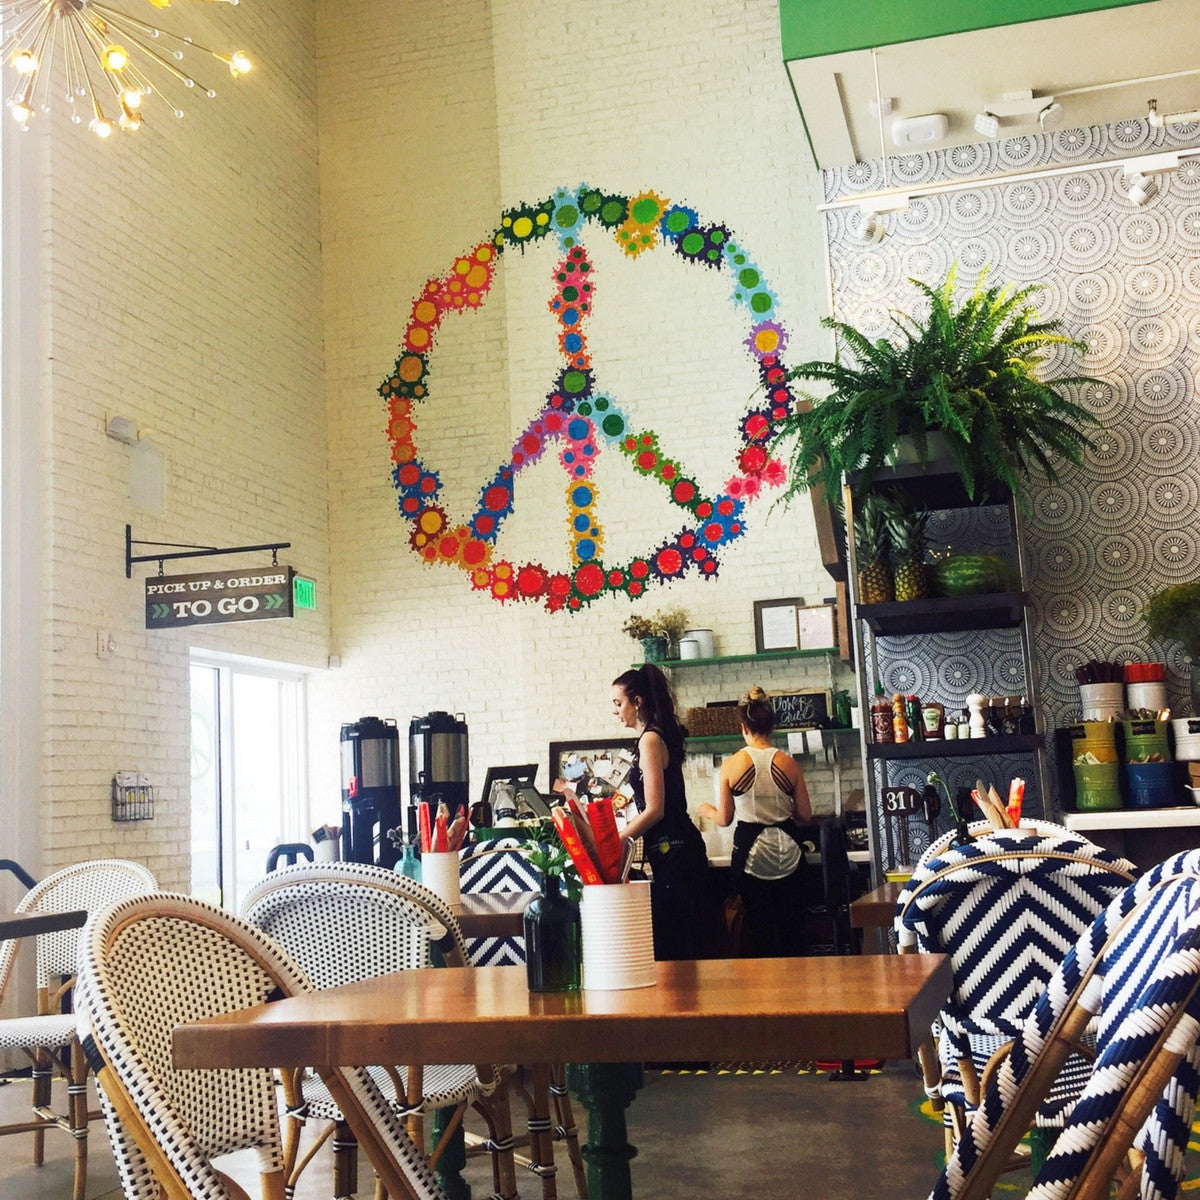 Bring Out Your Inner Flower Child – A New Healthy Eatery In Santa Monica